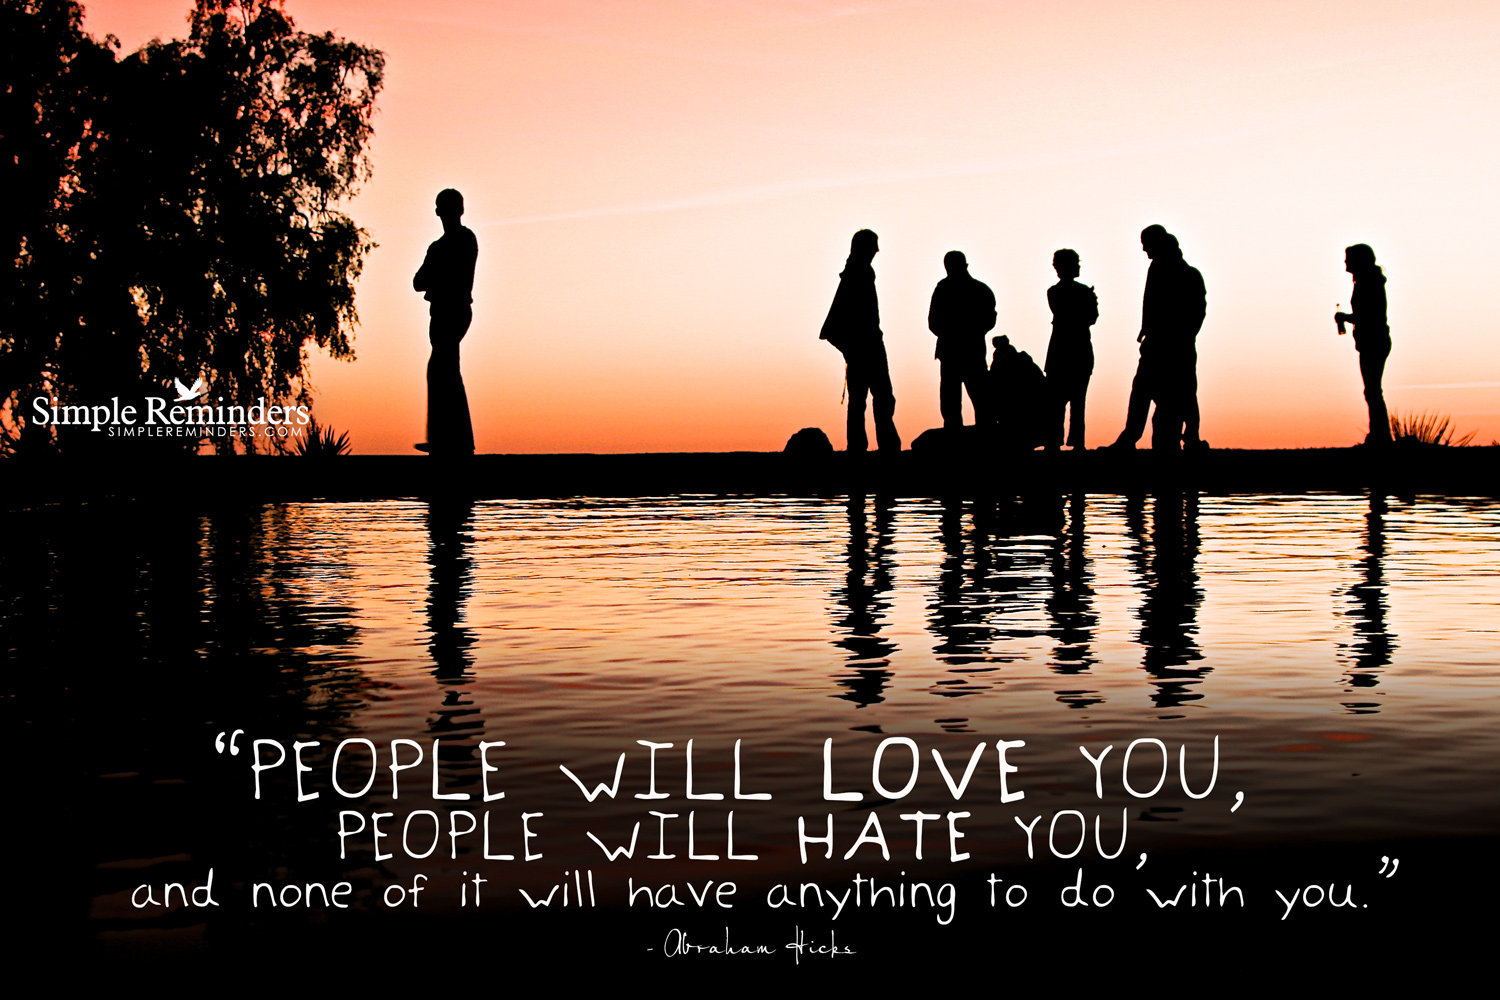 Quotes And Sayings: Hateful People Quotes And Sayings. QuotesGram